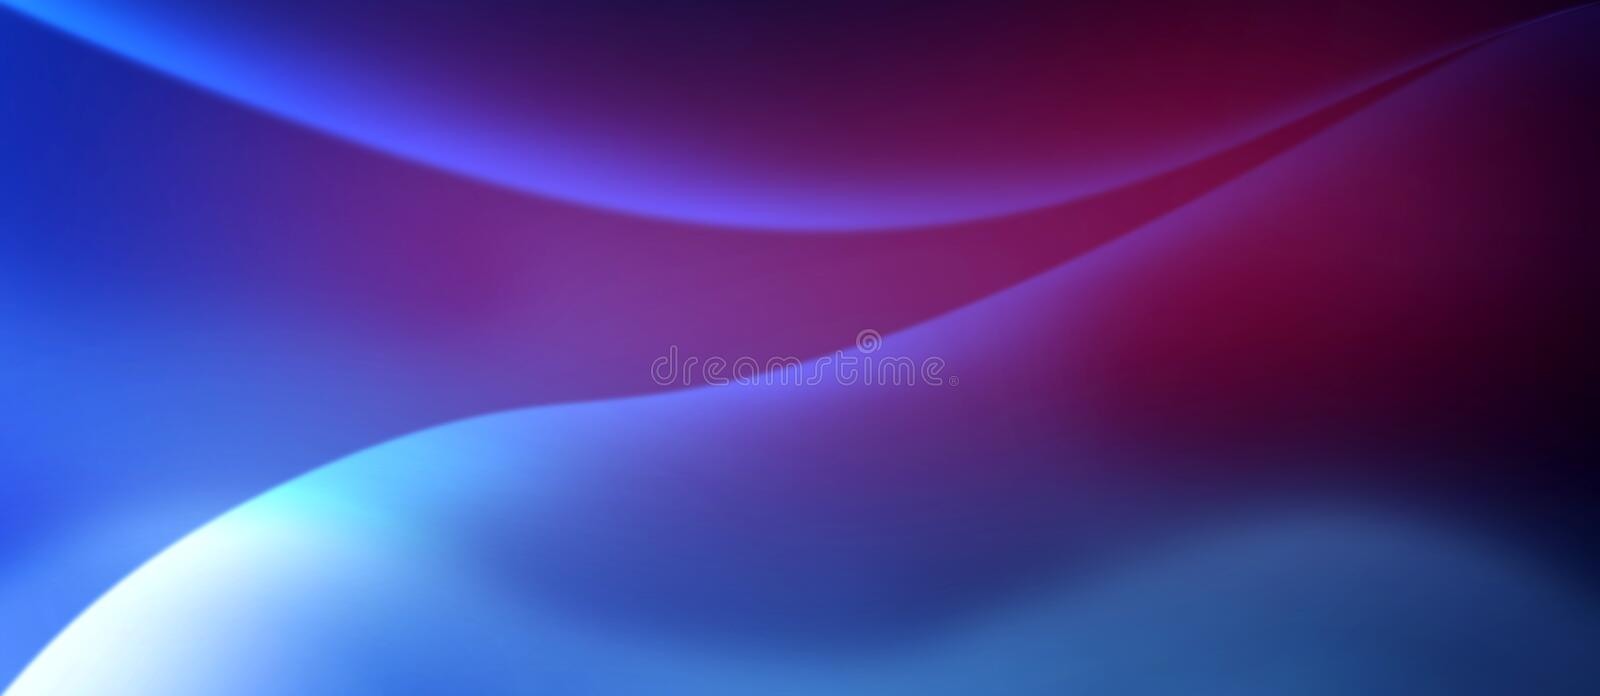 Abstract Shiny Curves in Blurred Purple, Blue and Red Background vector illustration